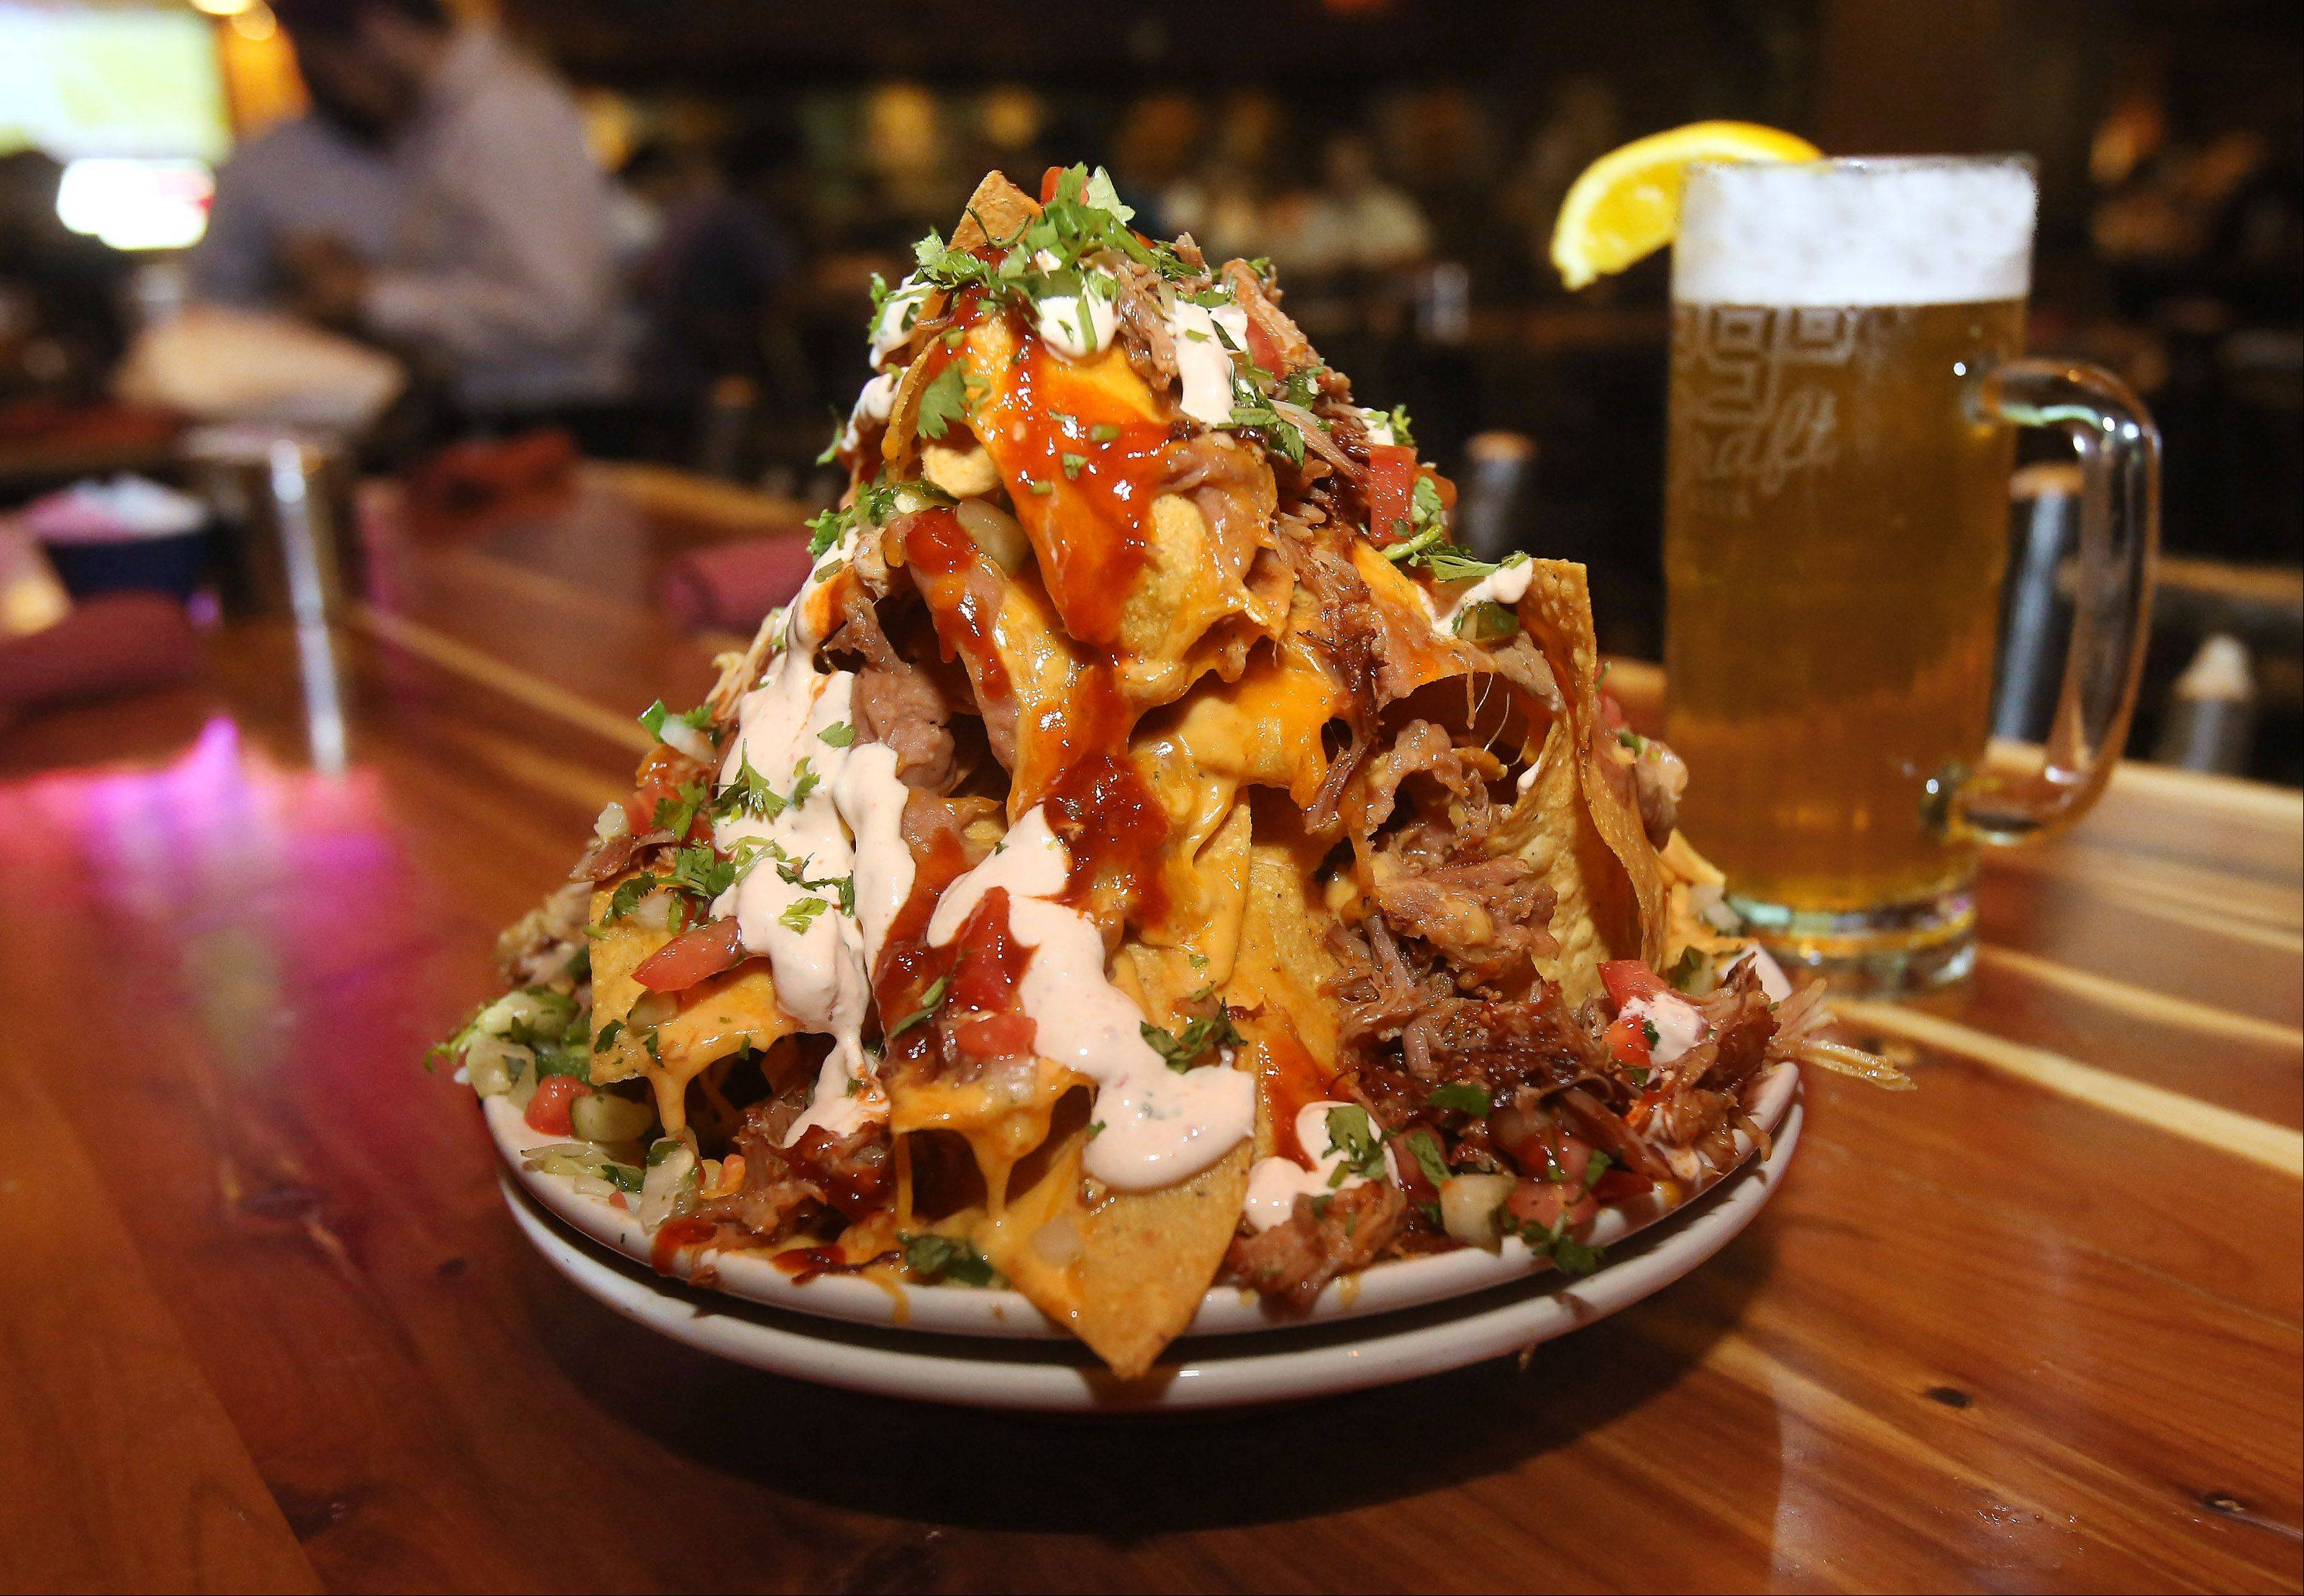 The BBQ Pulled Pork Nachos provide a mountain of a snack at Twin Peaks in Wheeling.